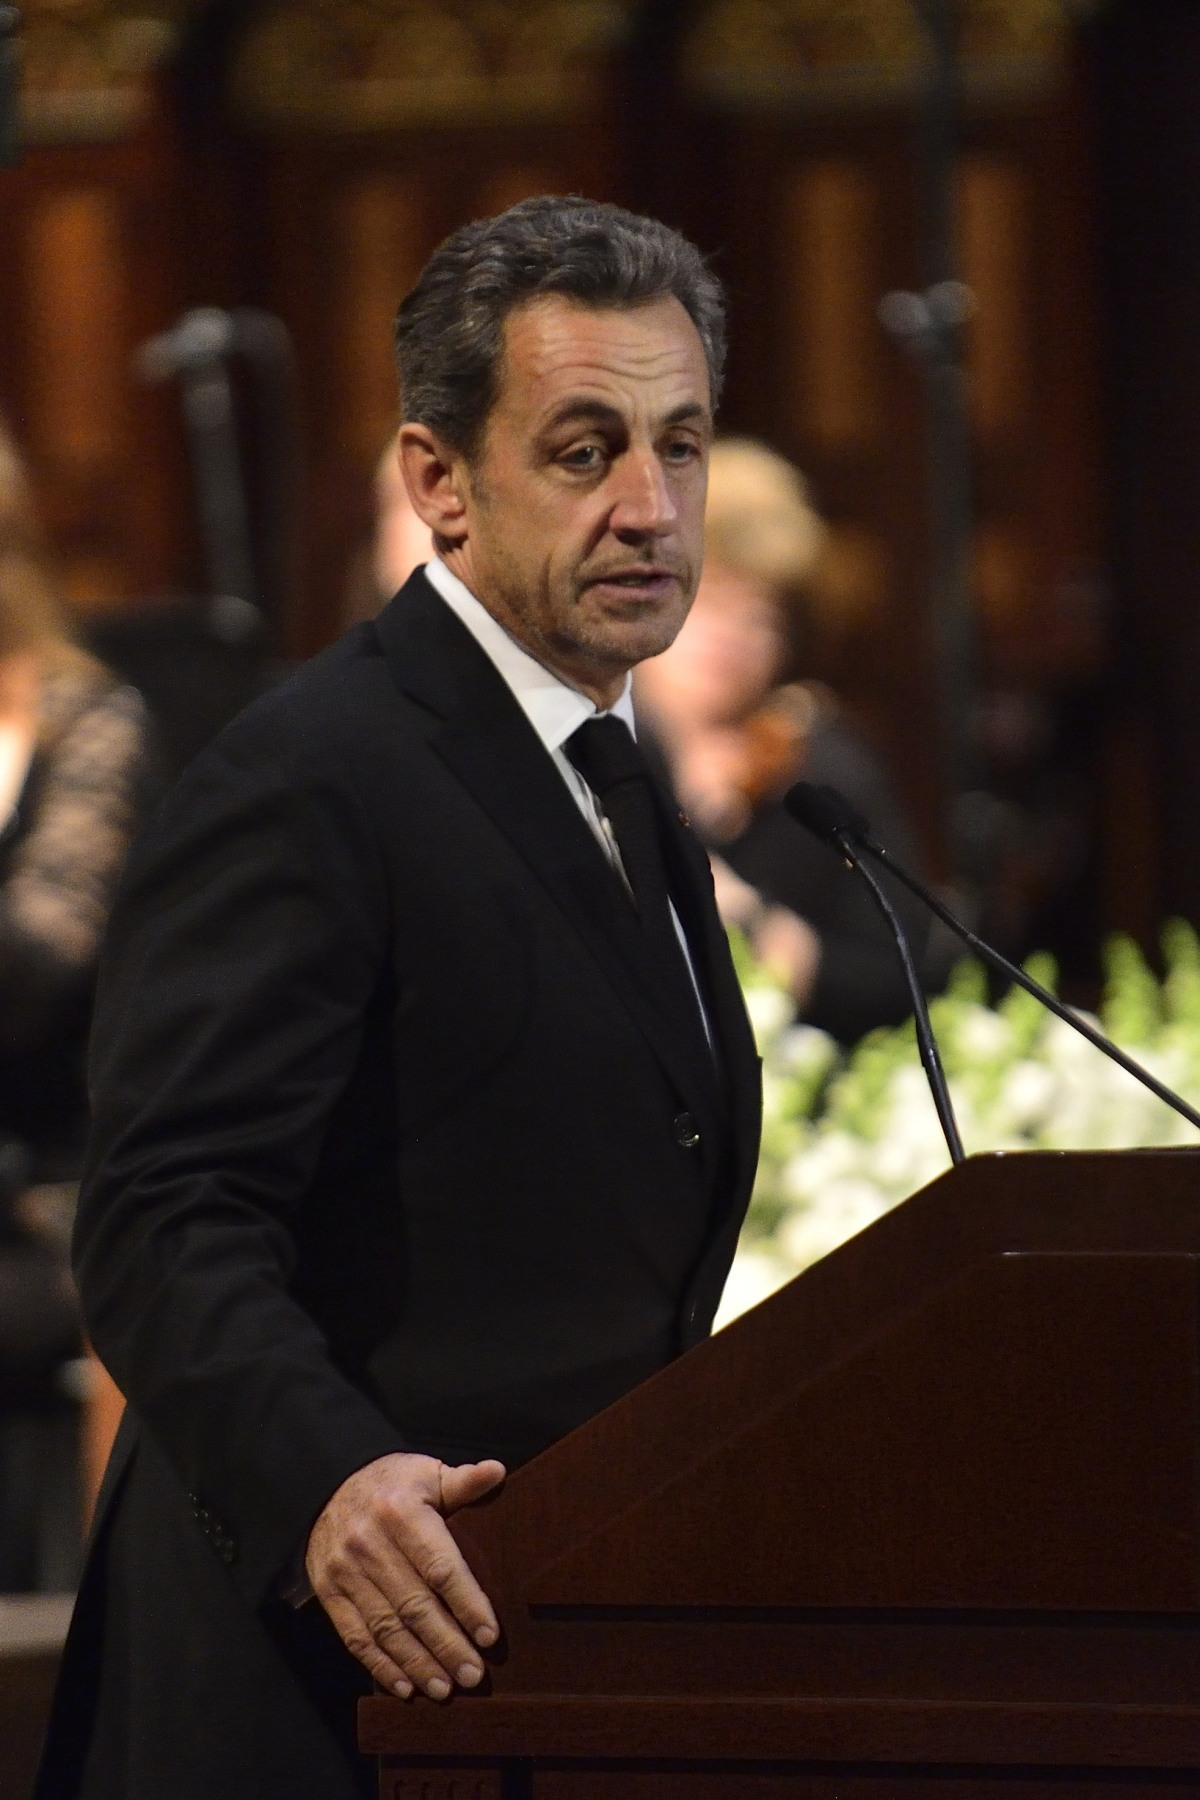 Former President of France Nicolas Sarkozy (2007-2012) talked about the special friendship he developed with Paul G. Desmarais.